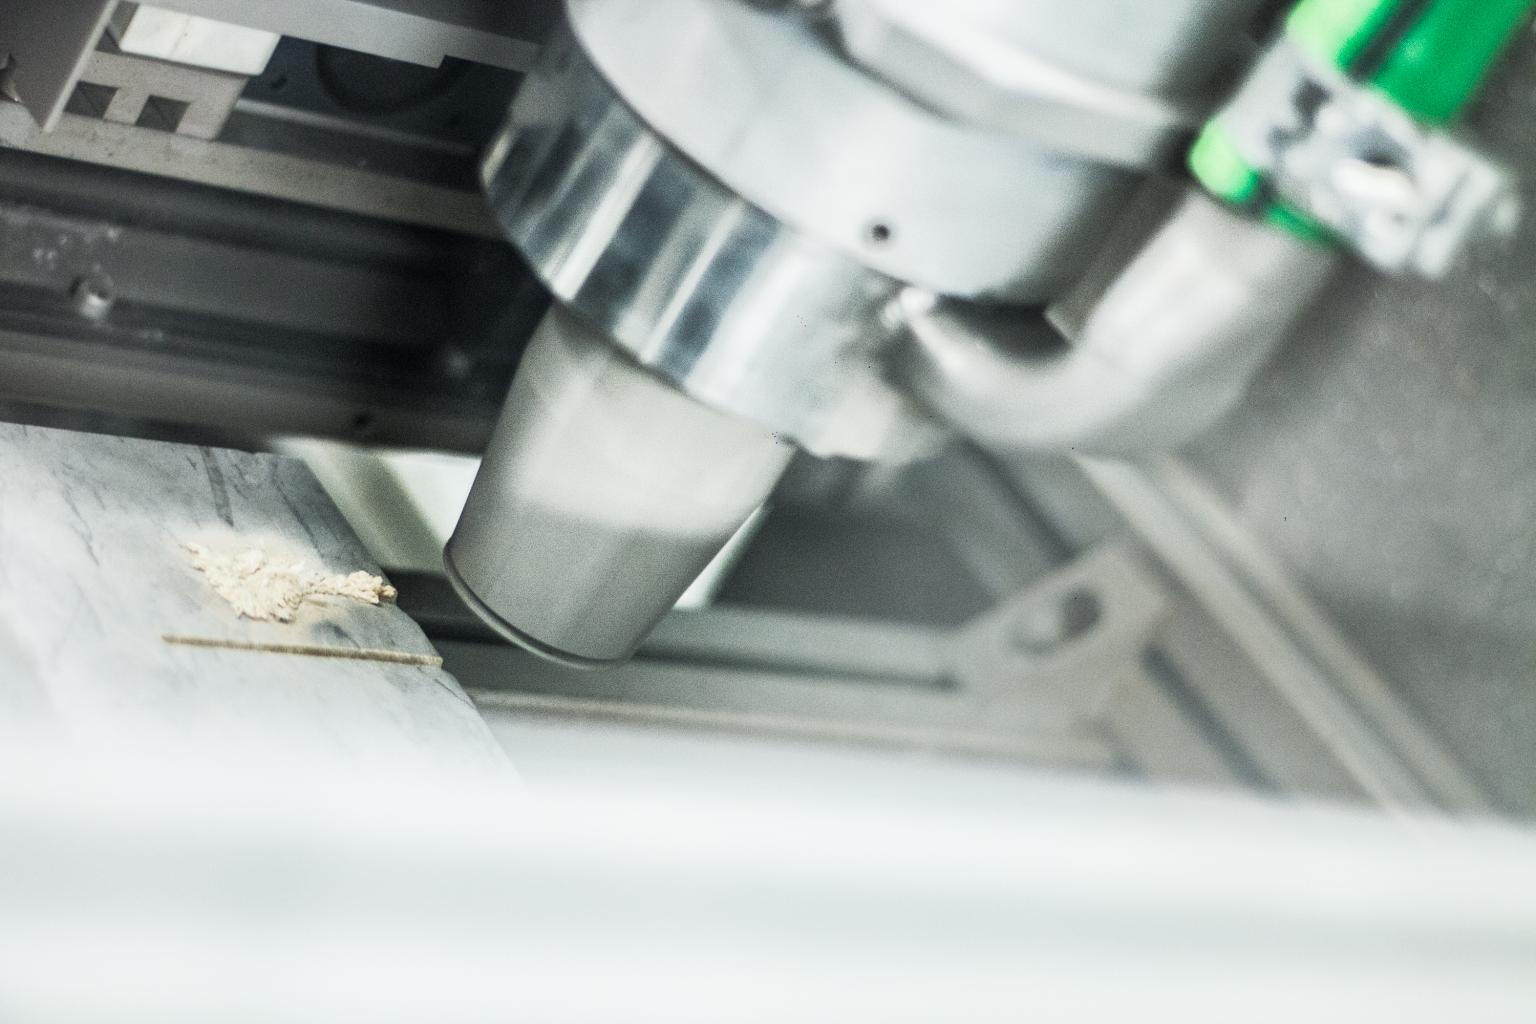 Onet's robotic laser-cutting technology